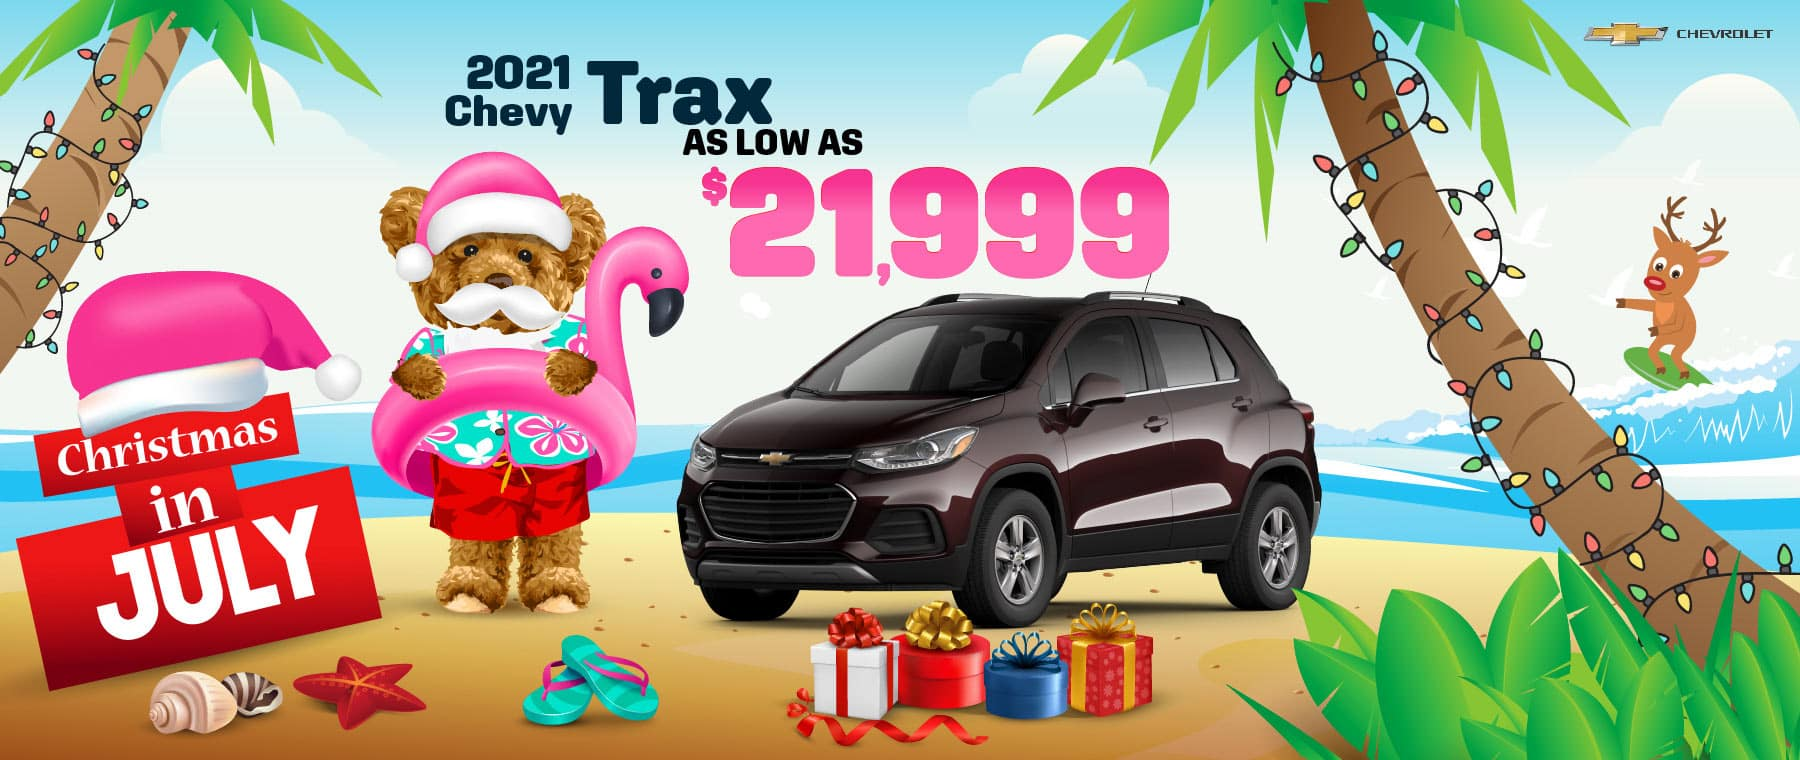 2021 Chevy Trax - as low as $21,999